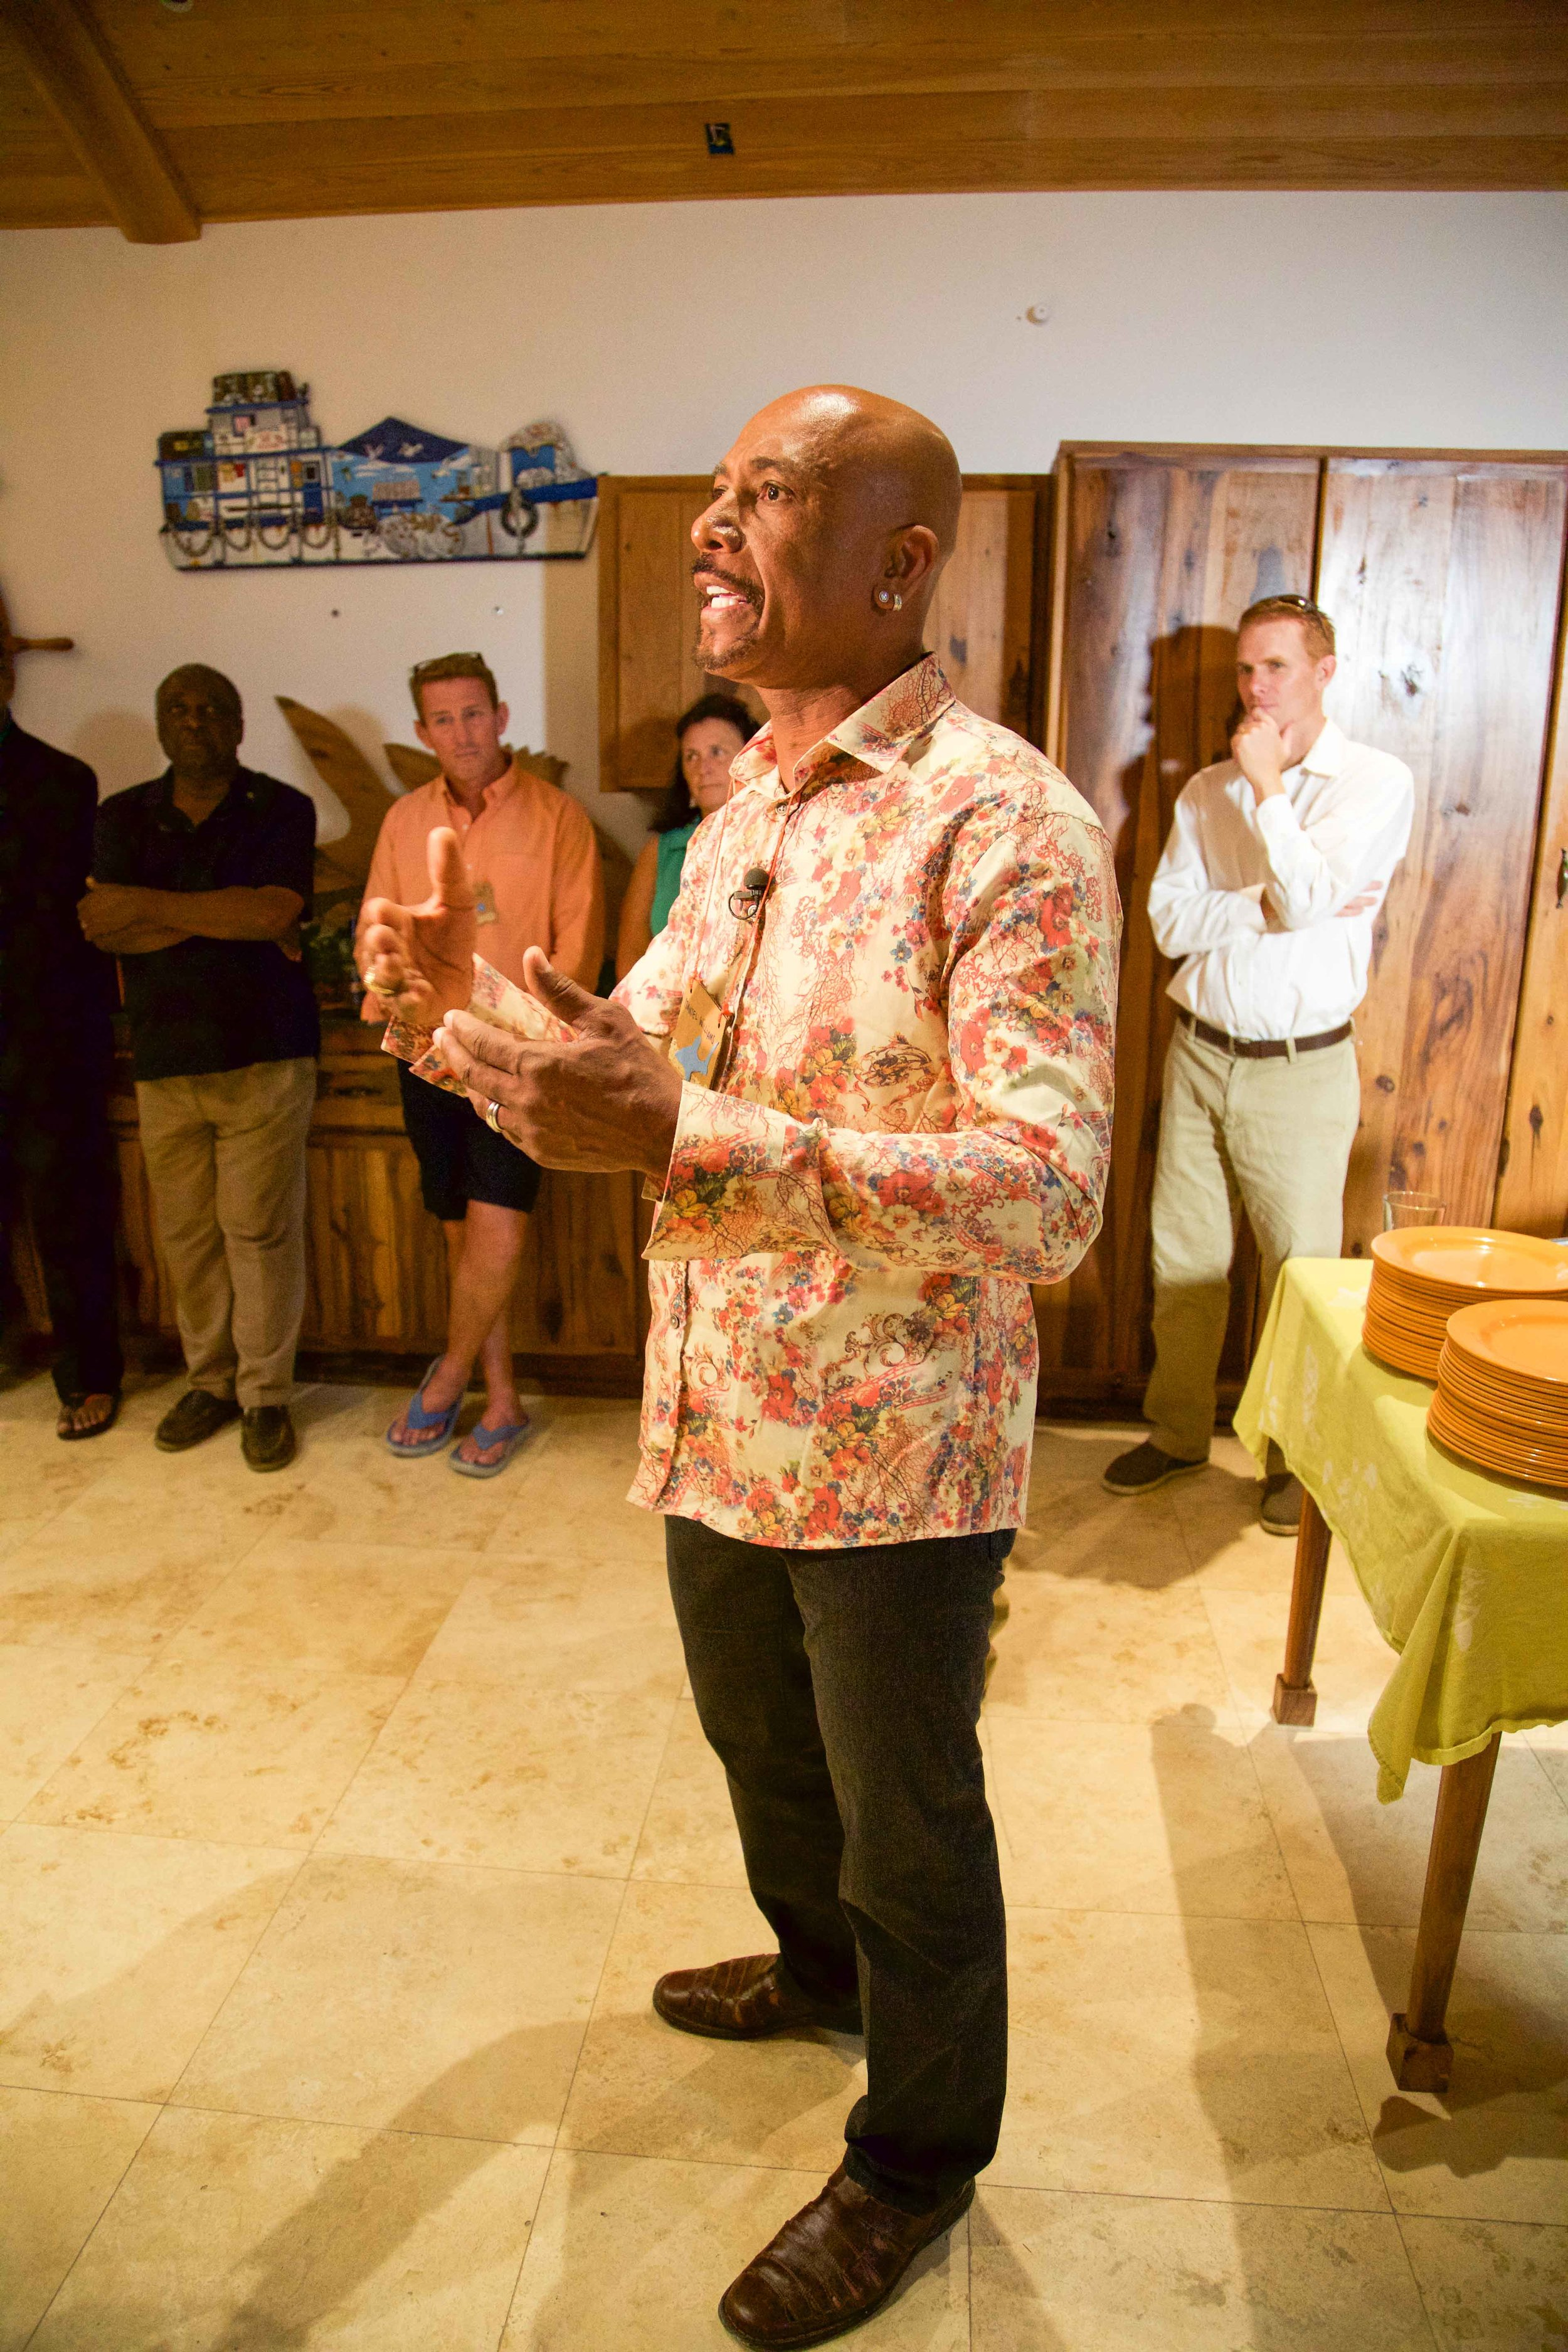 Montel Williams fires up the delegation with inspiration at the kickoff event